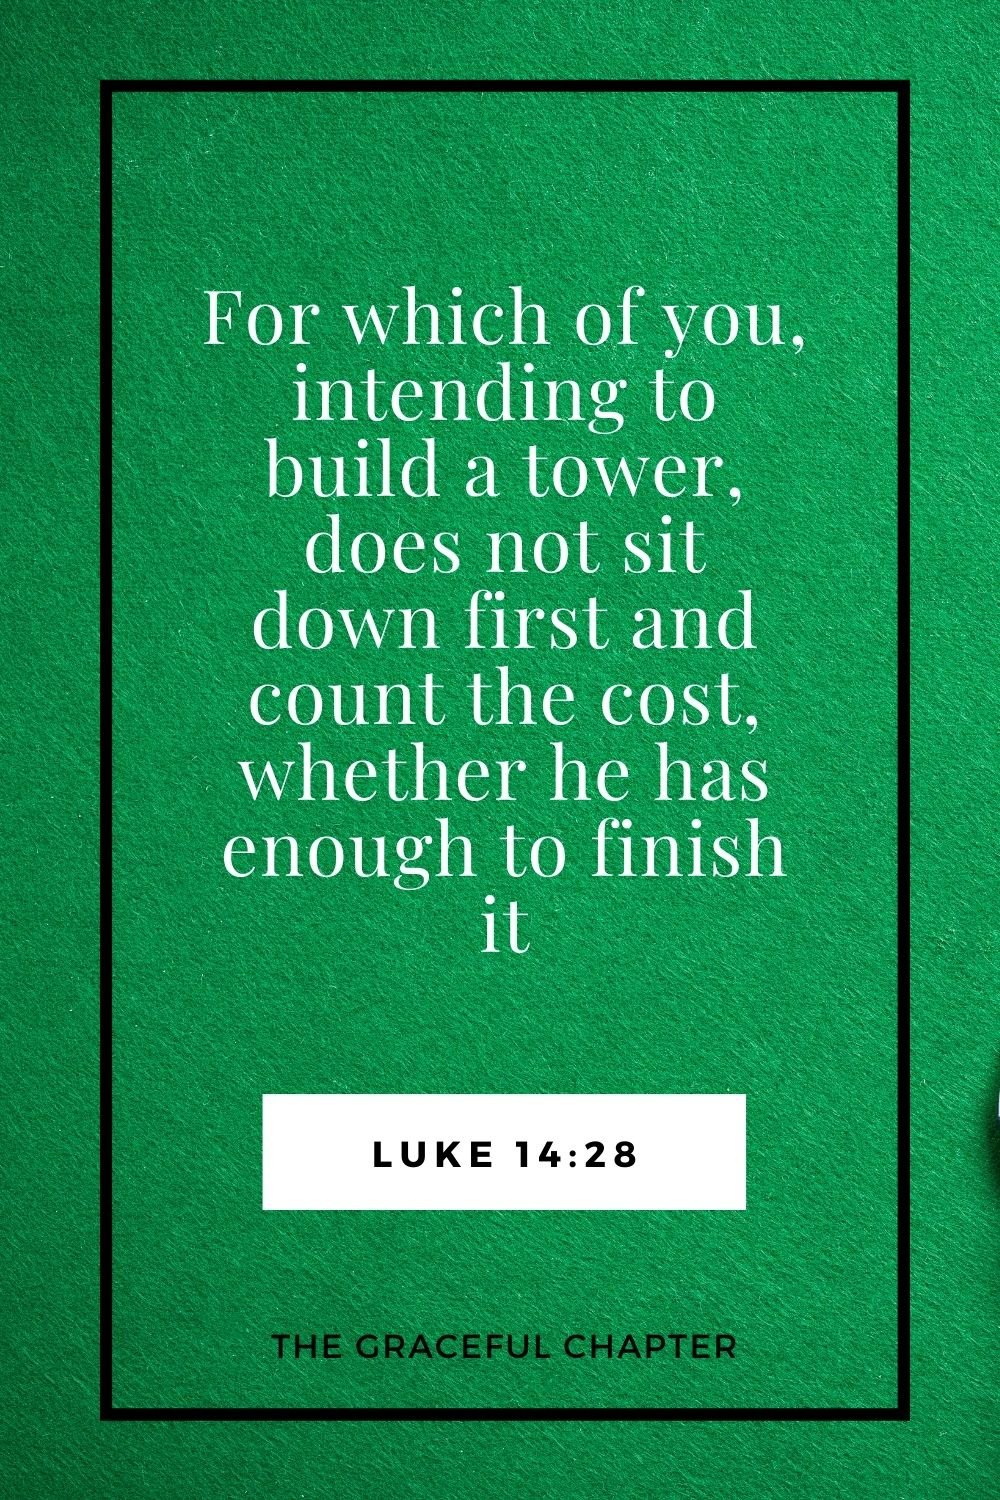 For which of you, intending to build a tower, does not sit down first and count the cost, whether he has enough to finish it Luke 14:28